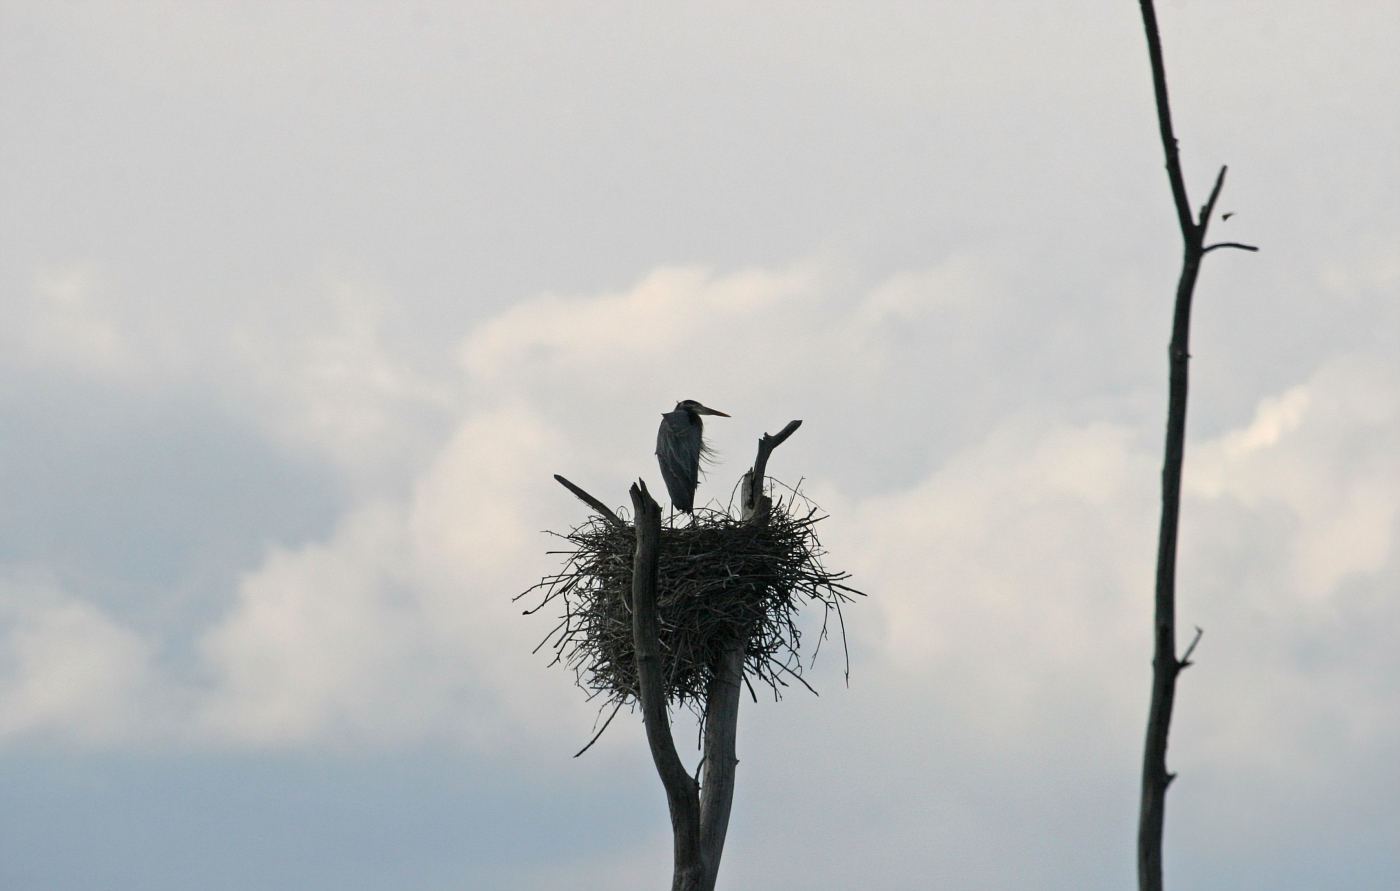 View From the Nest